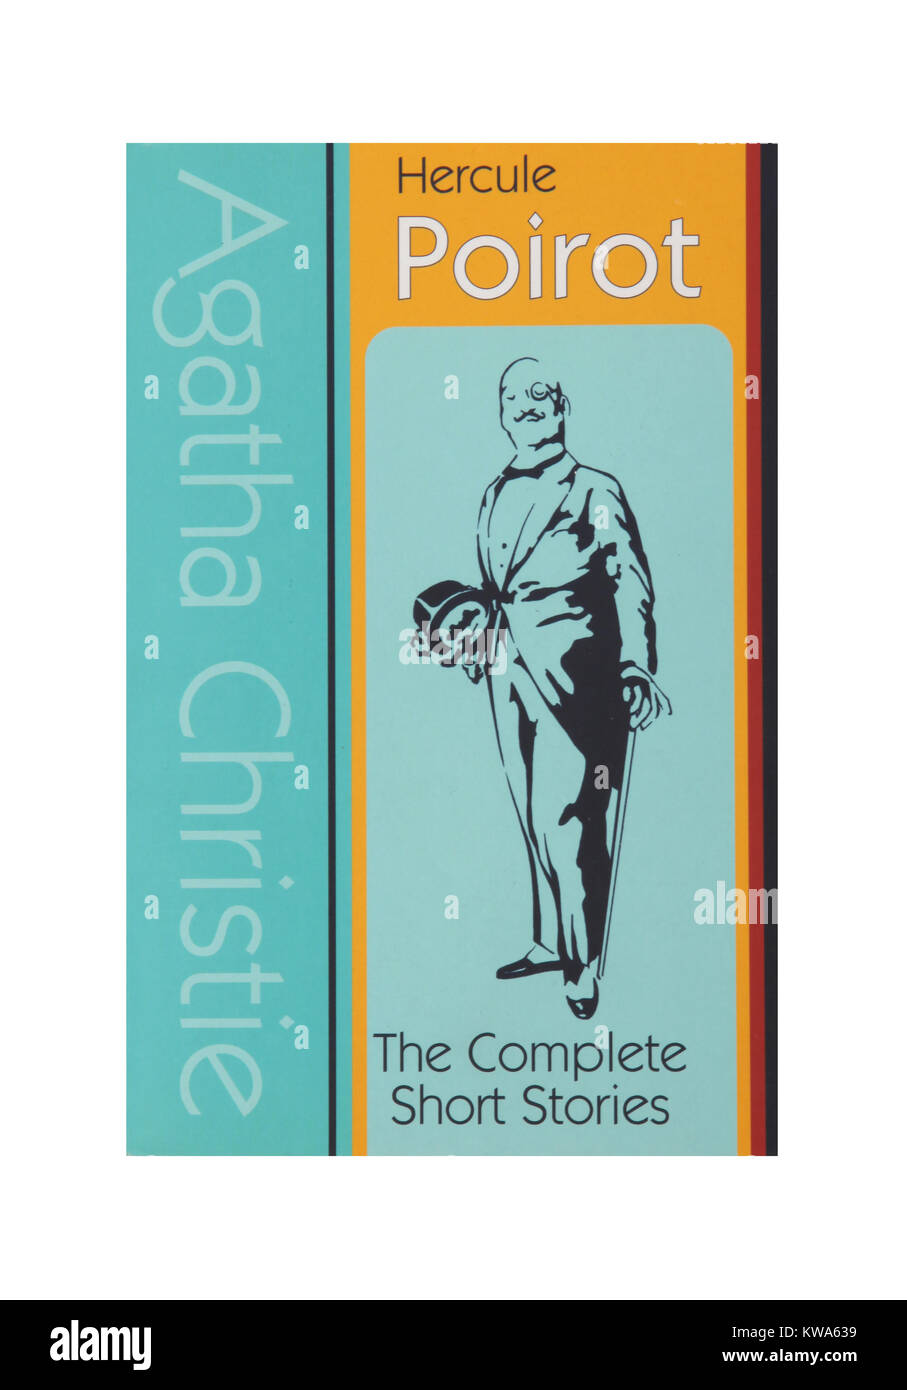 The book, Poirot by Agatha Christie - Stock Image